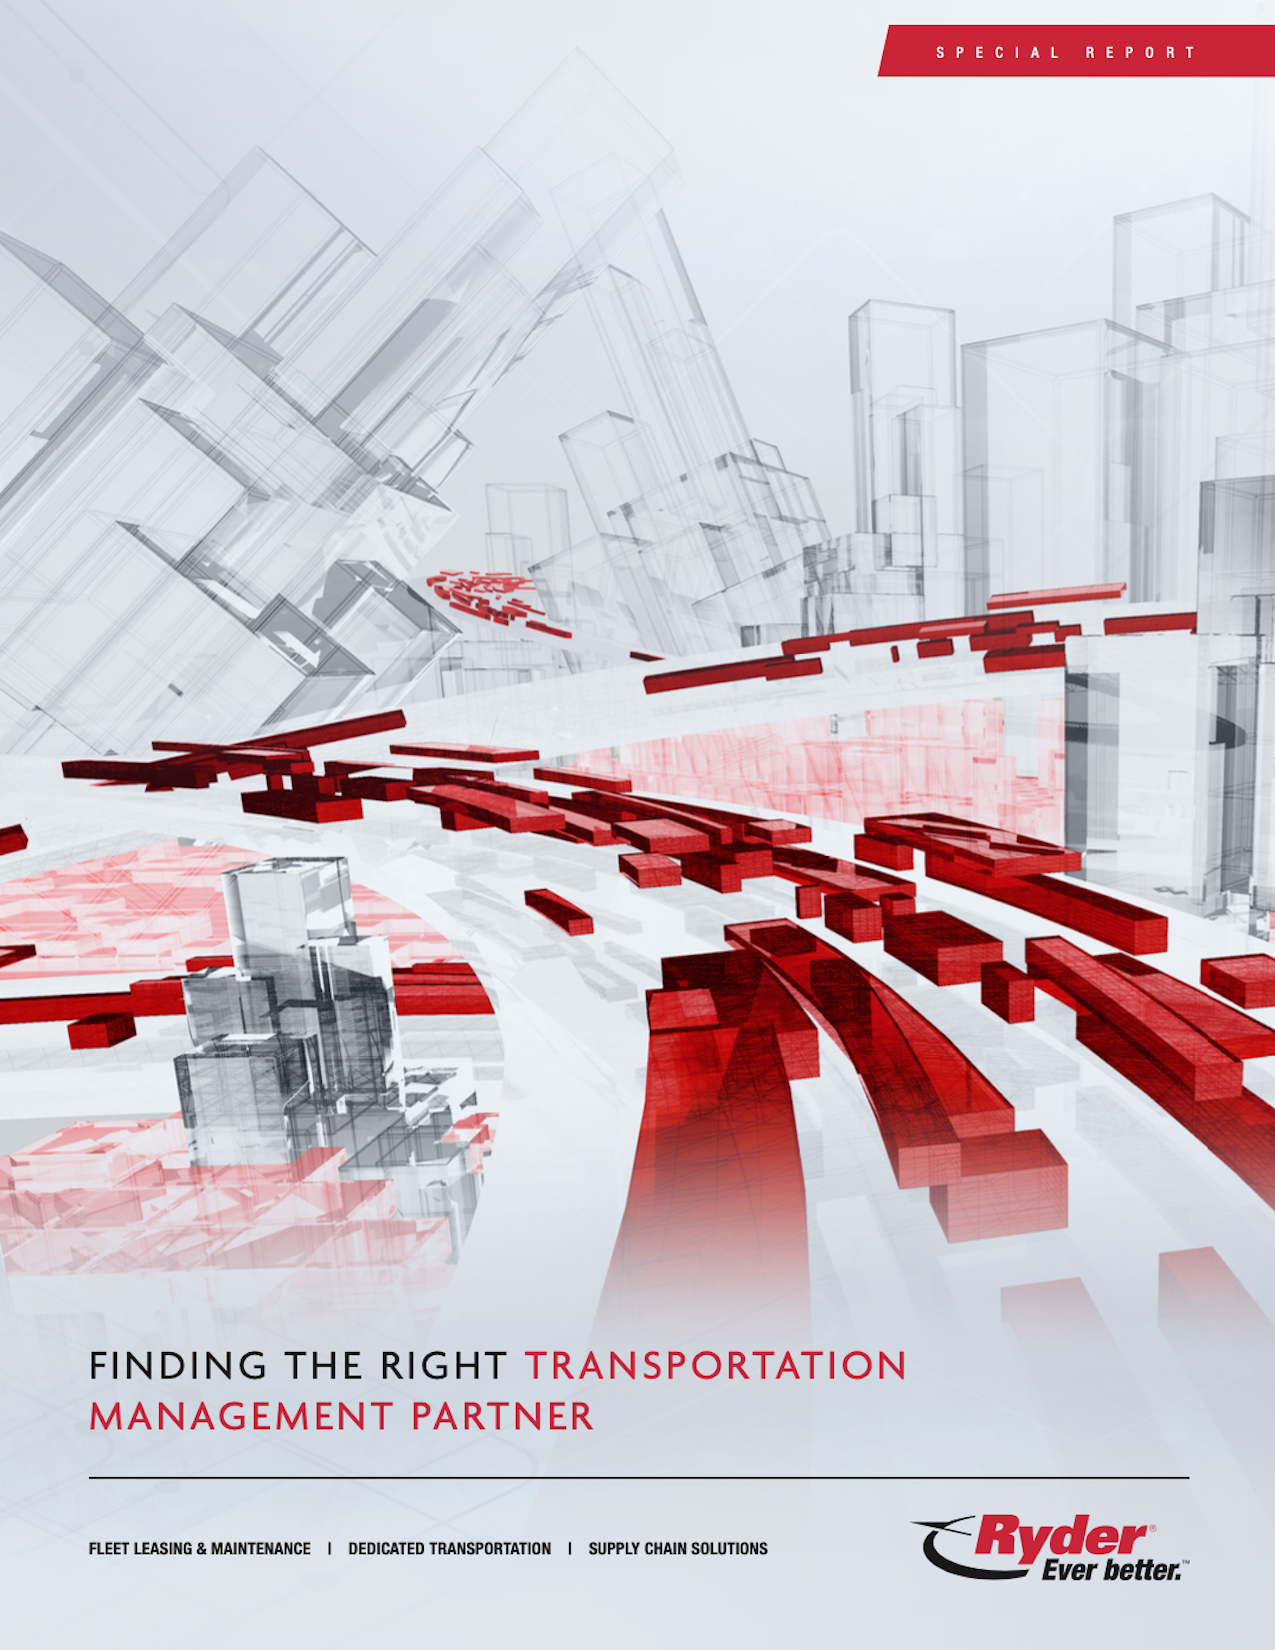 Ryder - Finding the Right Transportation Management Partner